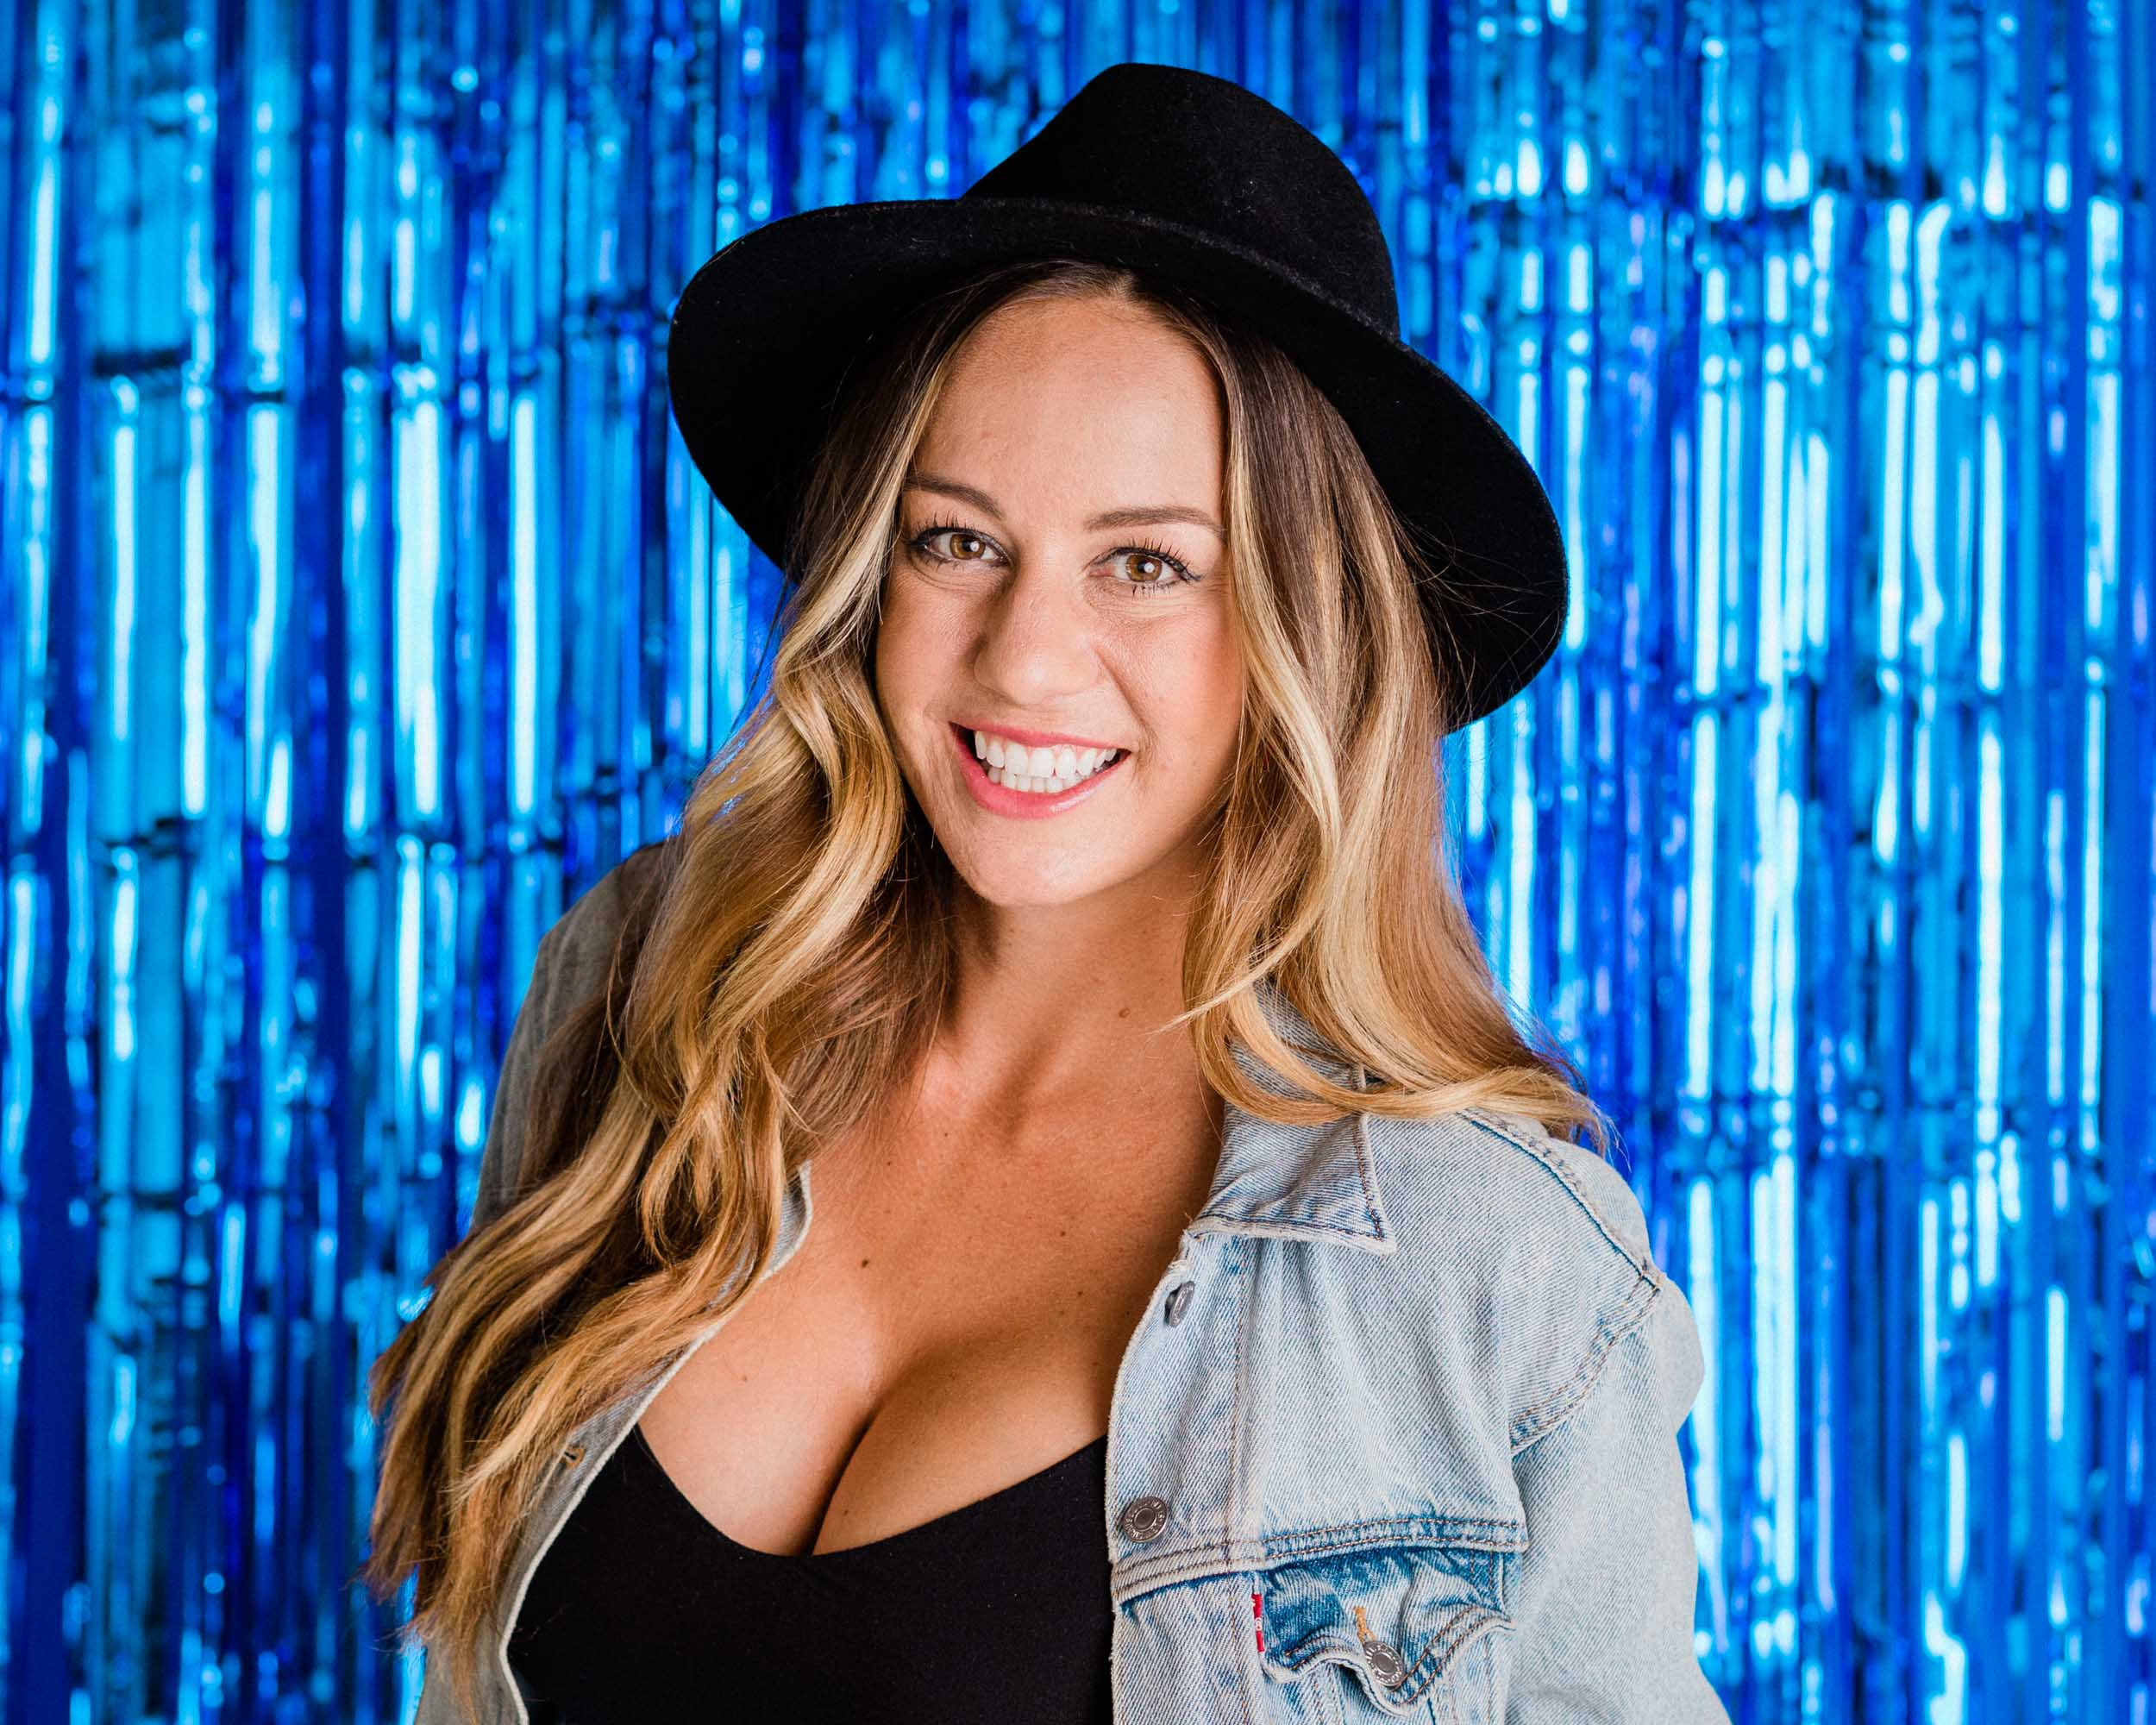 ALLIE SHANE - Allie is a Southern California native who was born to throw parties. Her company Pop the Champagne runs day-of-coordination for over 90 weddings per year. She's seen it all.